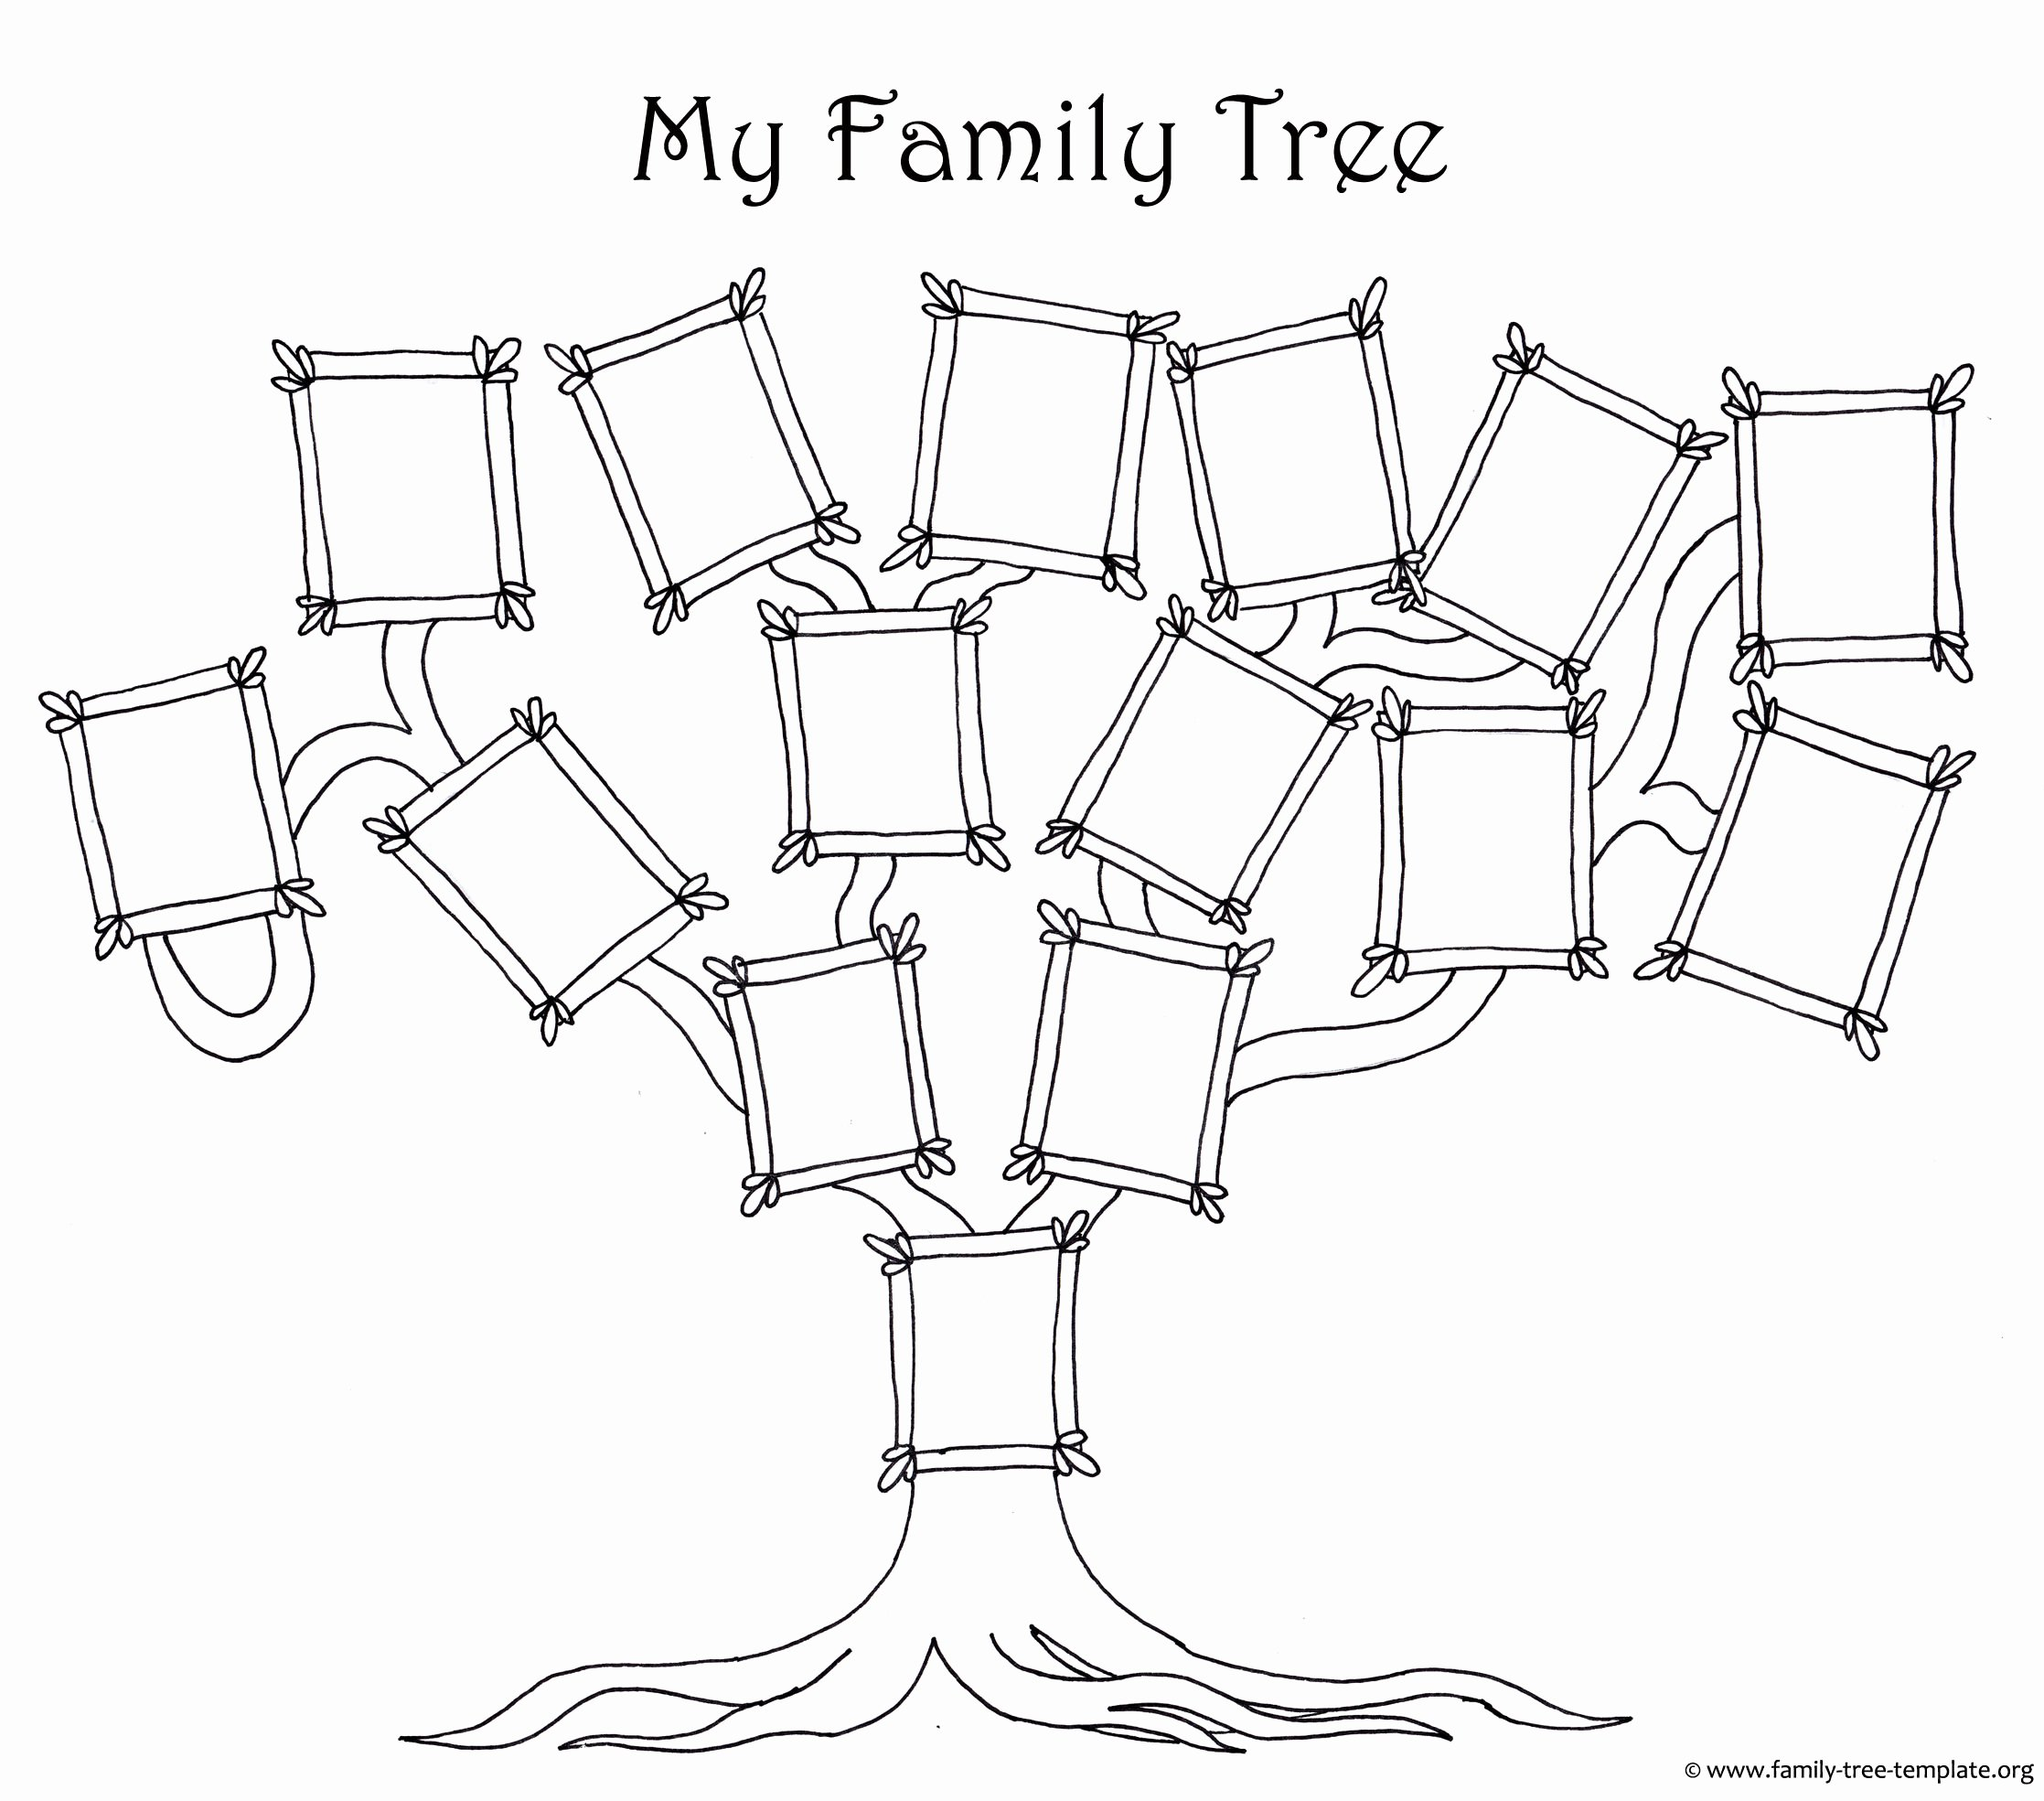 Family Tree with Pictures Template Luxury Free Family Tree Template Designs for Making Ancestry Charts